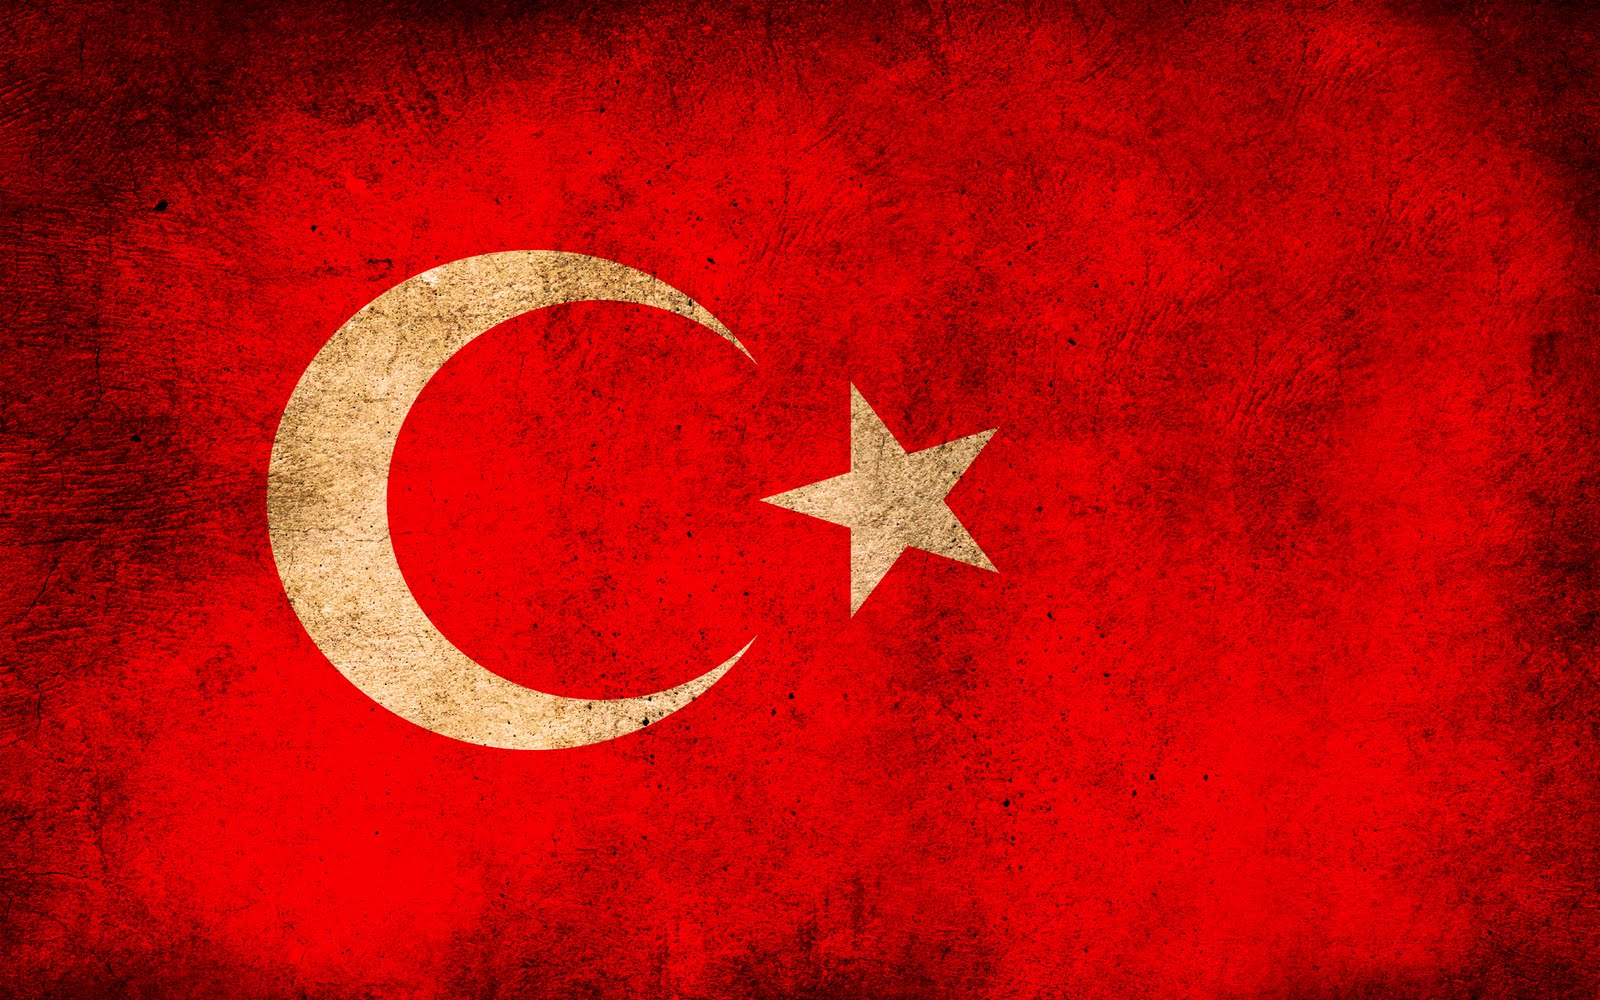 Trkiye bayraklar arkaplan turkish flags wallpaper 1920x1080 trk bayra arkaplan turkish flag wallpaper 1600x1000 voltagebd Image collections